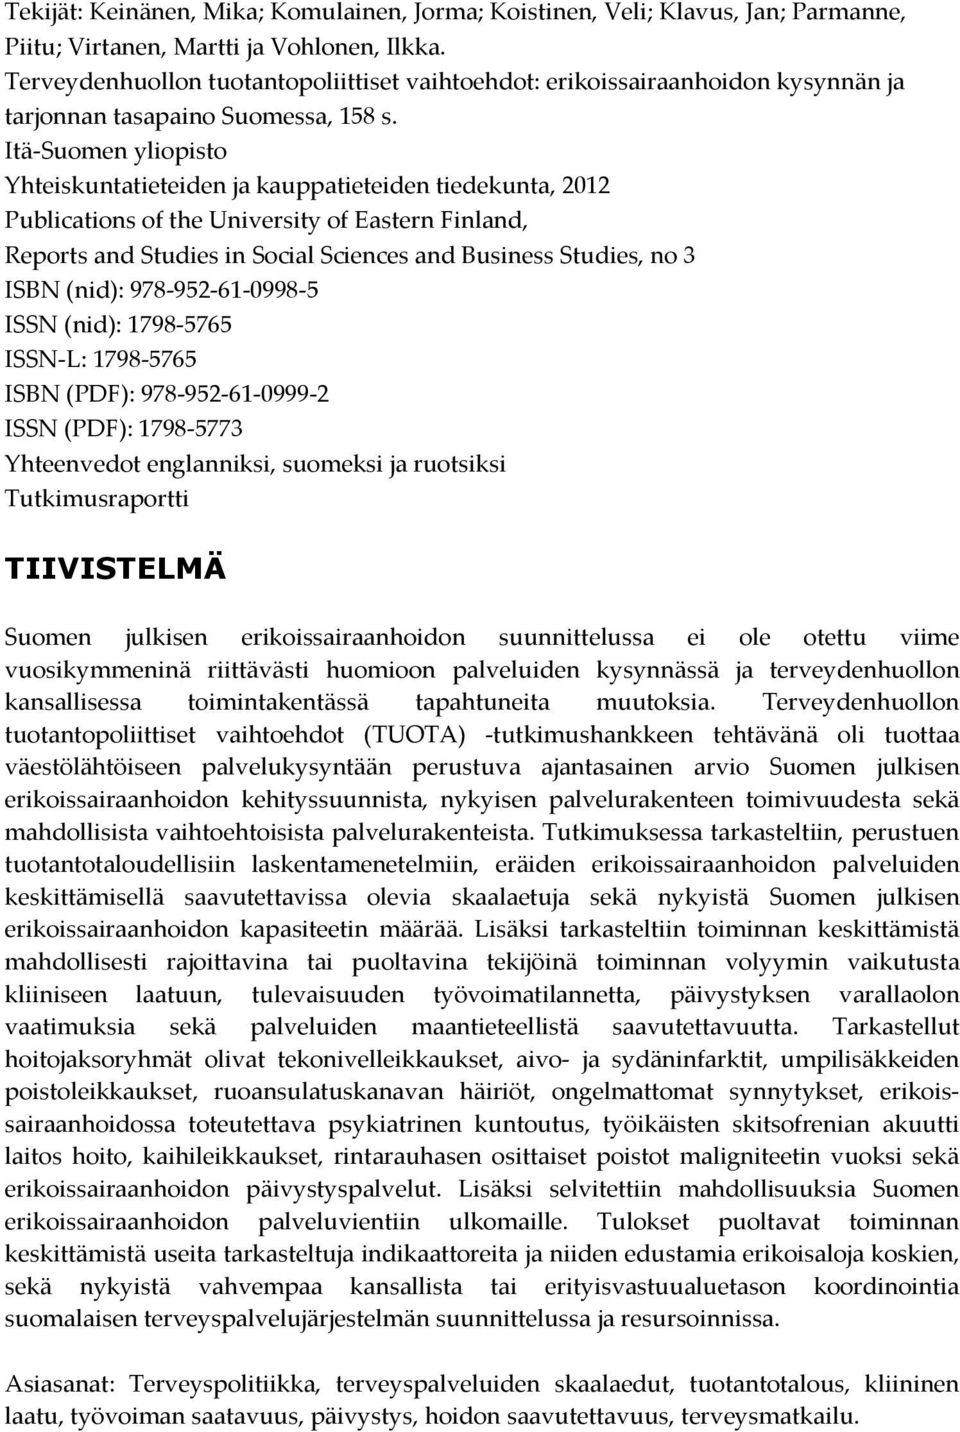 Itä-Suomen yliopisto Yhteiskuntatieteiden ja kauppatieteiden tiedekunta, 2012 Publications of the University of Eastern Finland, Reports and Studies in Social Sciences and Business Studies, no 3 ISBN